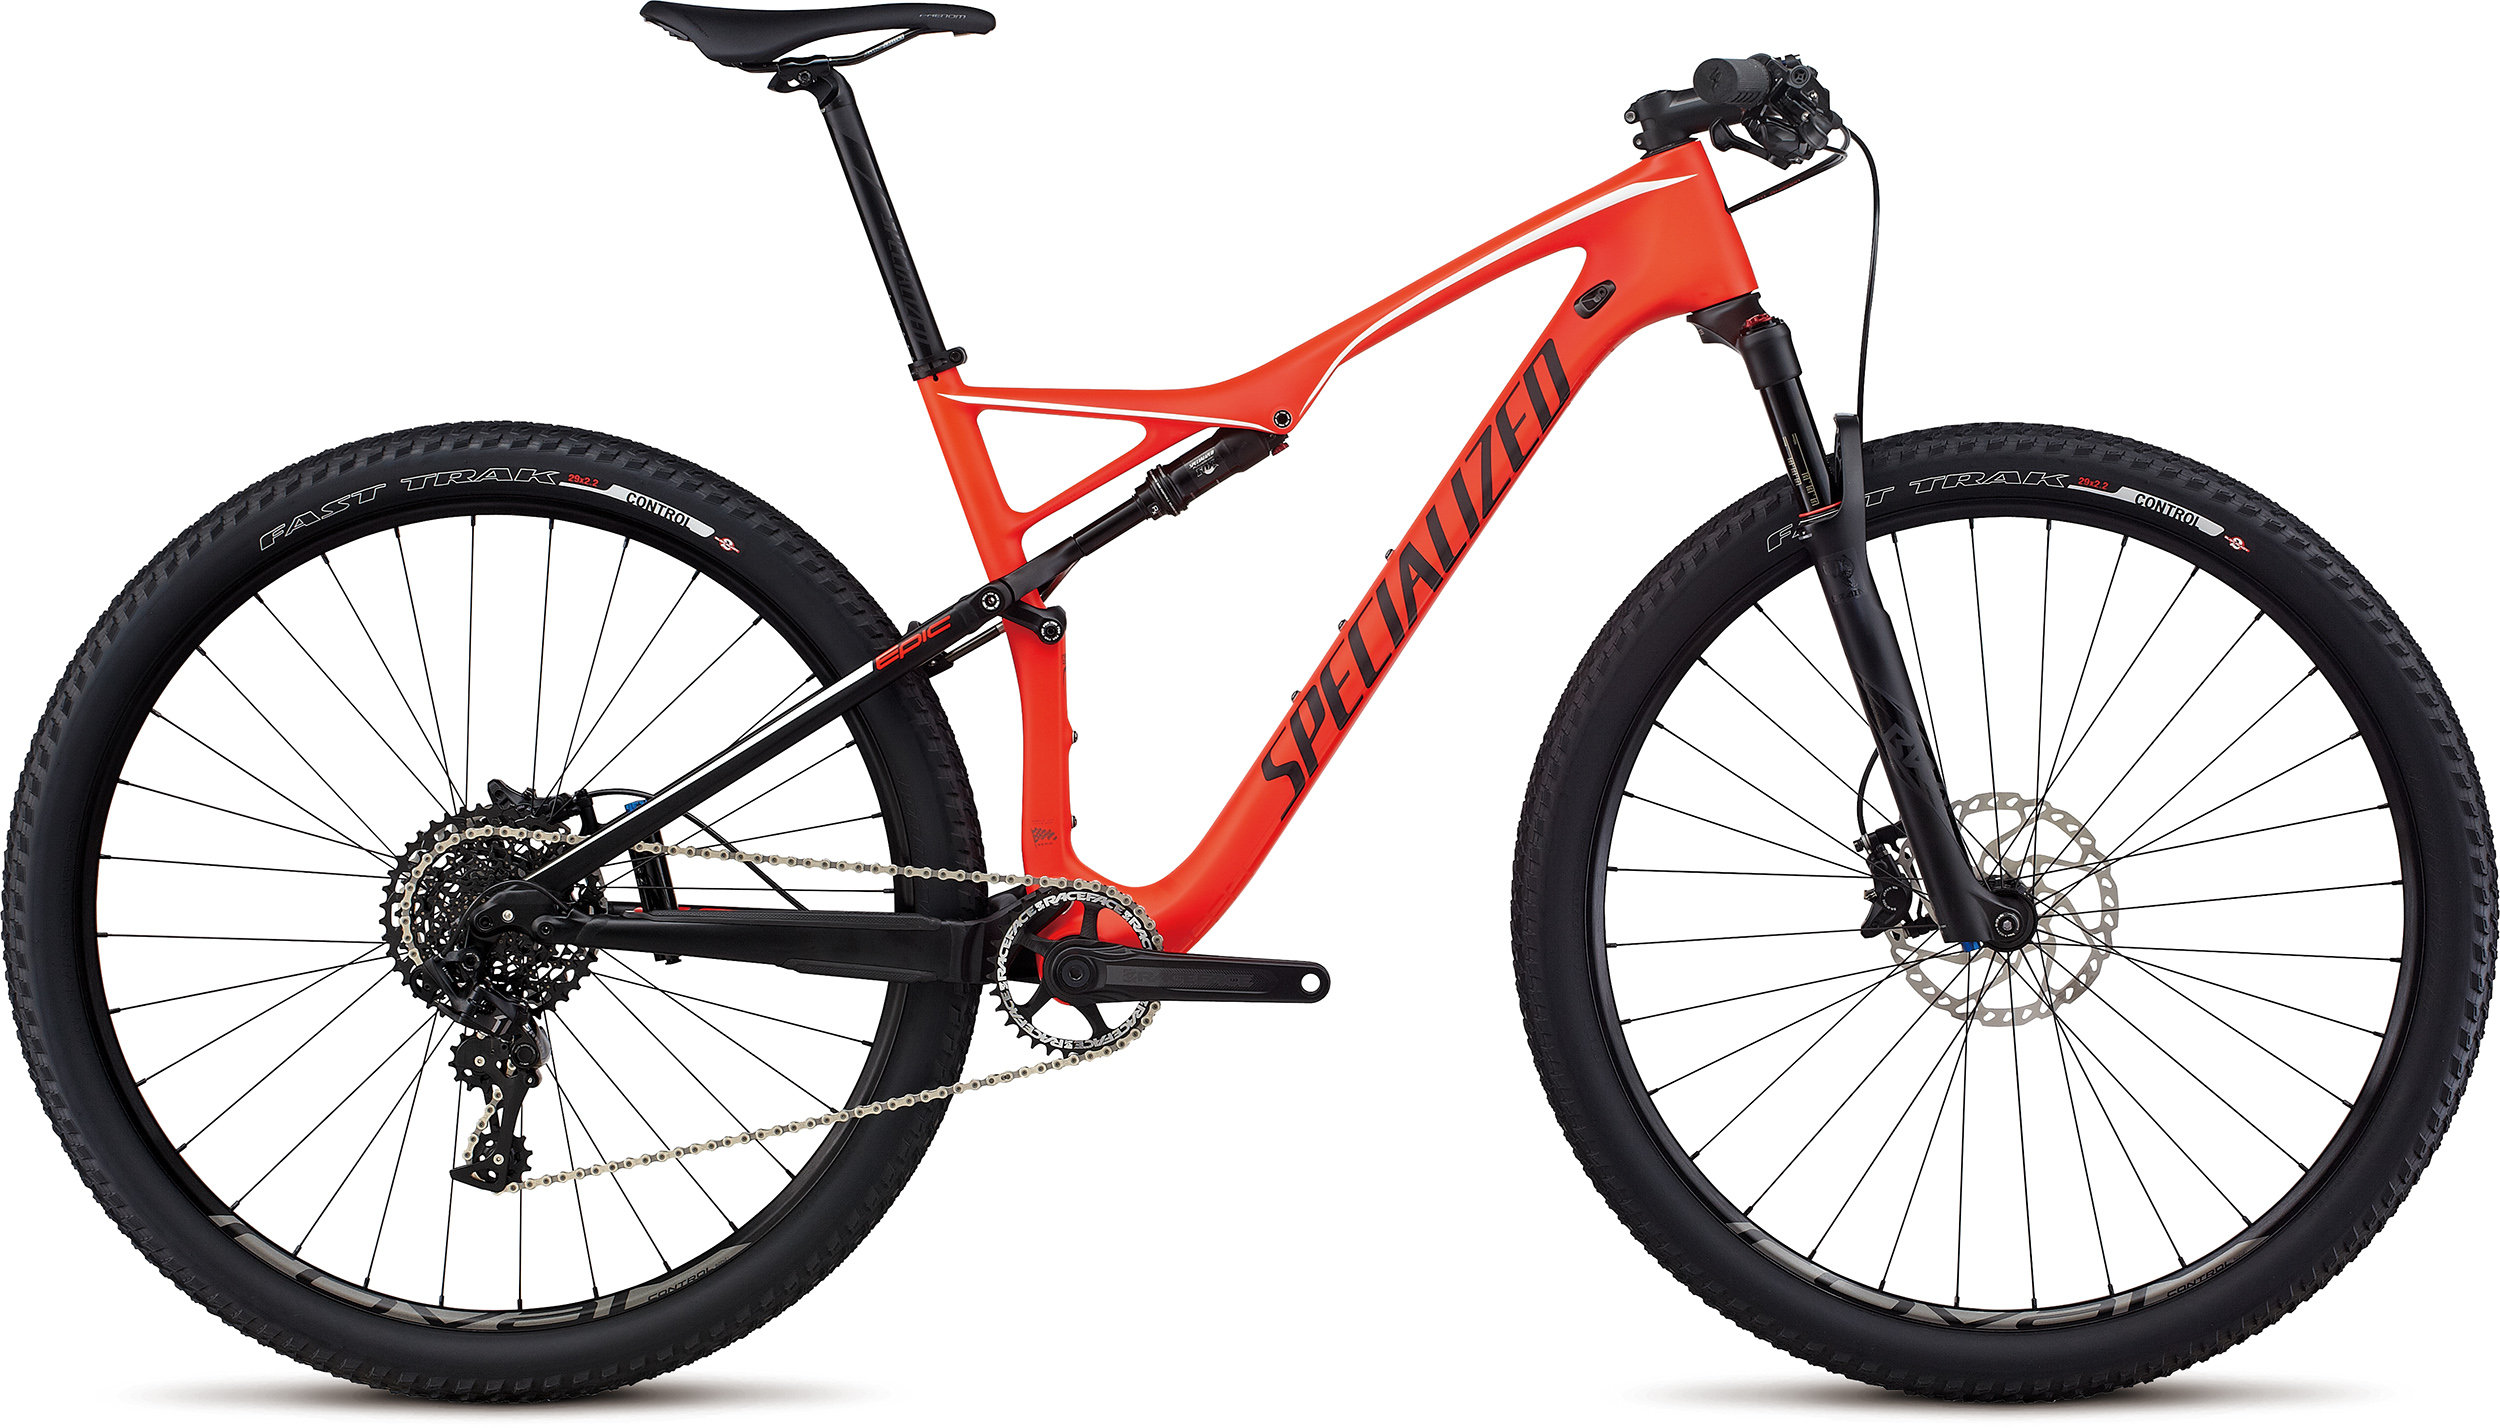 SPECIALIZED EPIC FSR EXPERT CARBON WC 29 RKTRED/BLK/WHT S - Bike Maniac